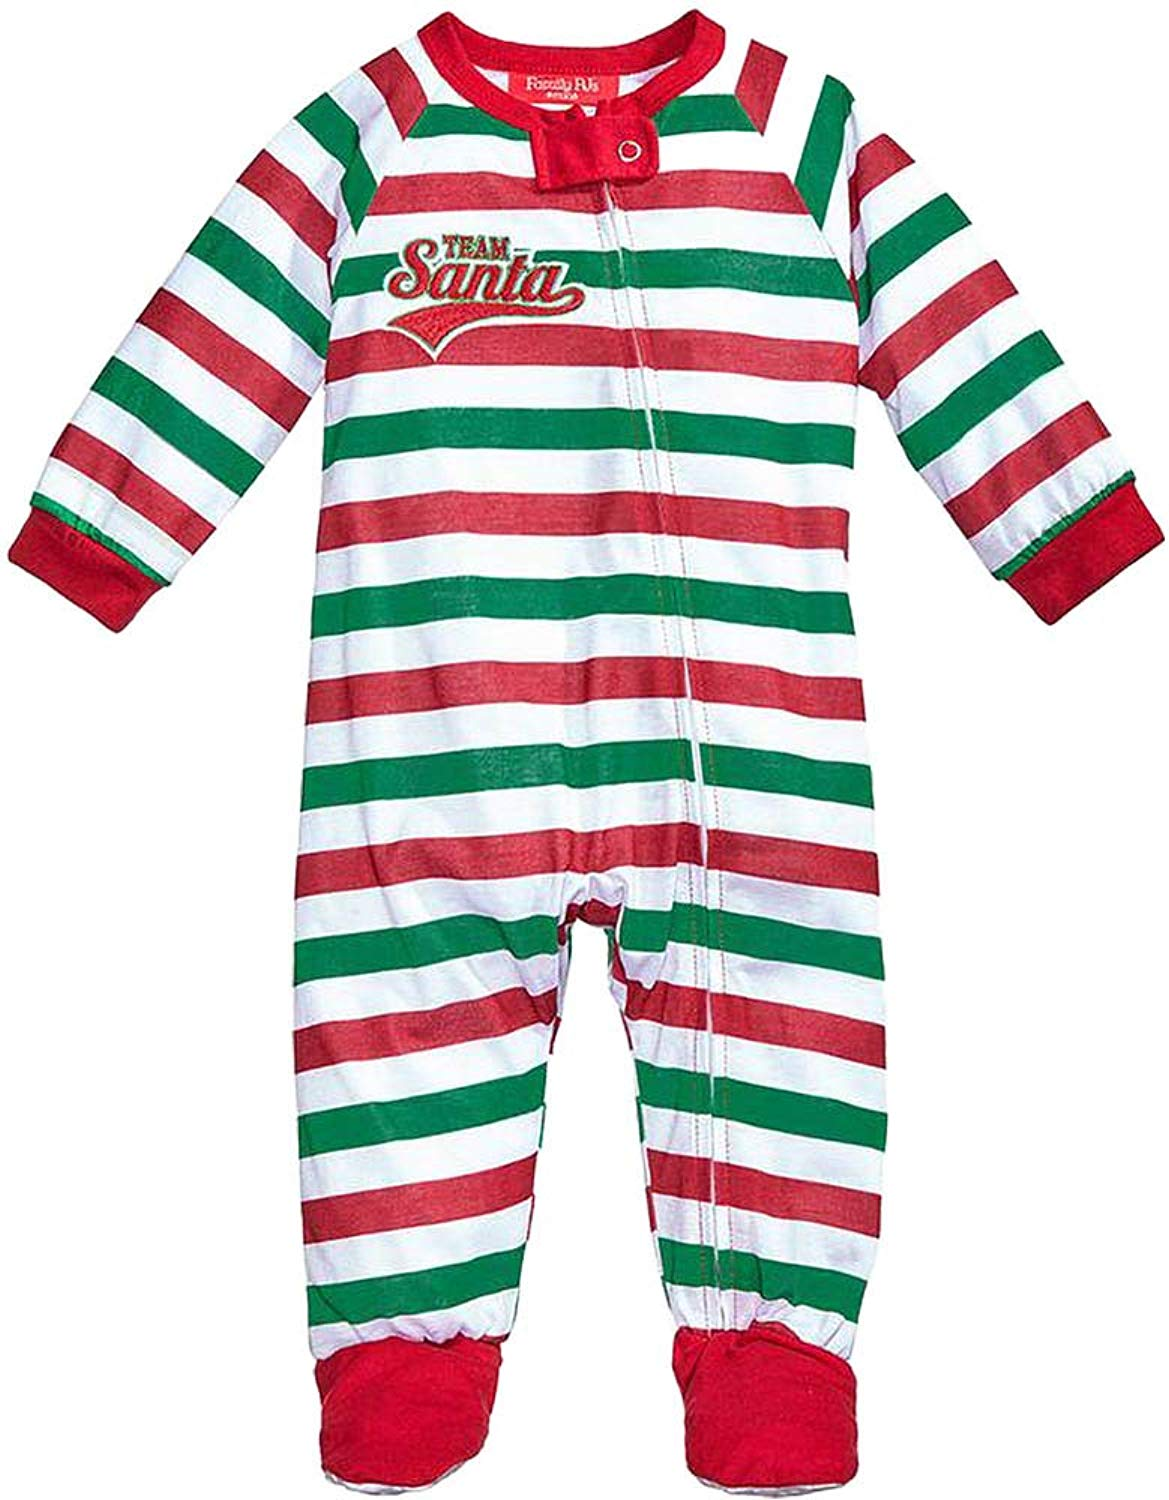 aea3ead862 Get Quotations · Family Pajamas 1-Pc Team Santa Footed Pajamas Red Green  Striped 12 Months